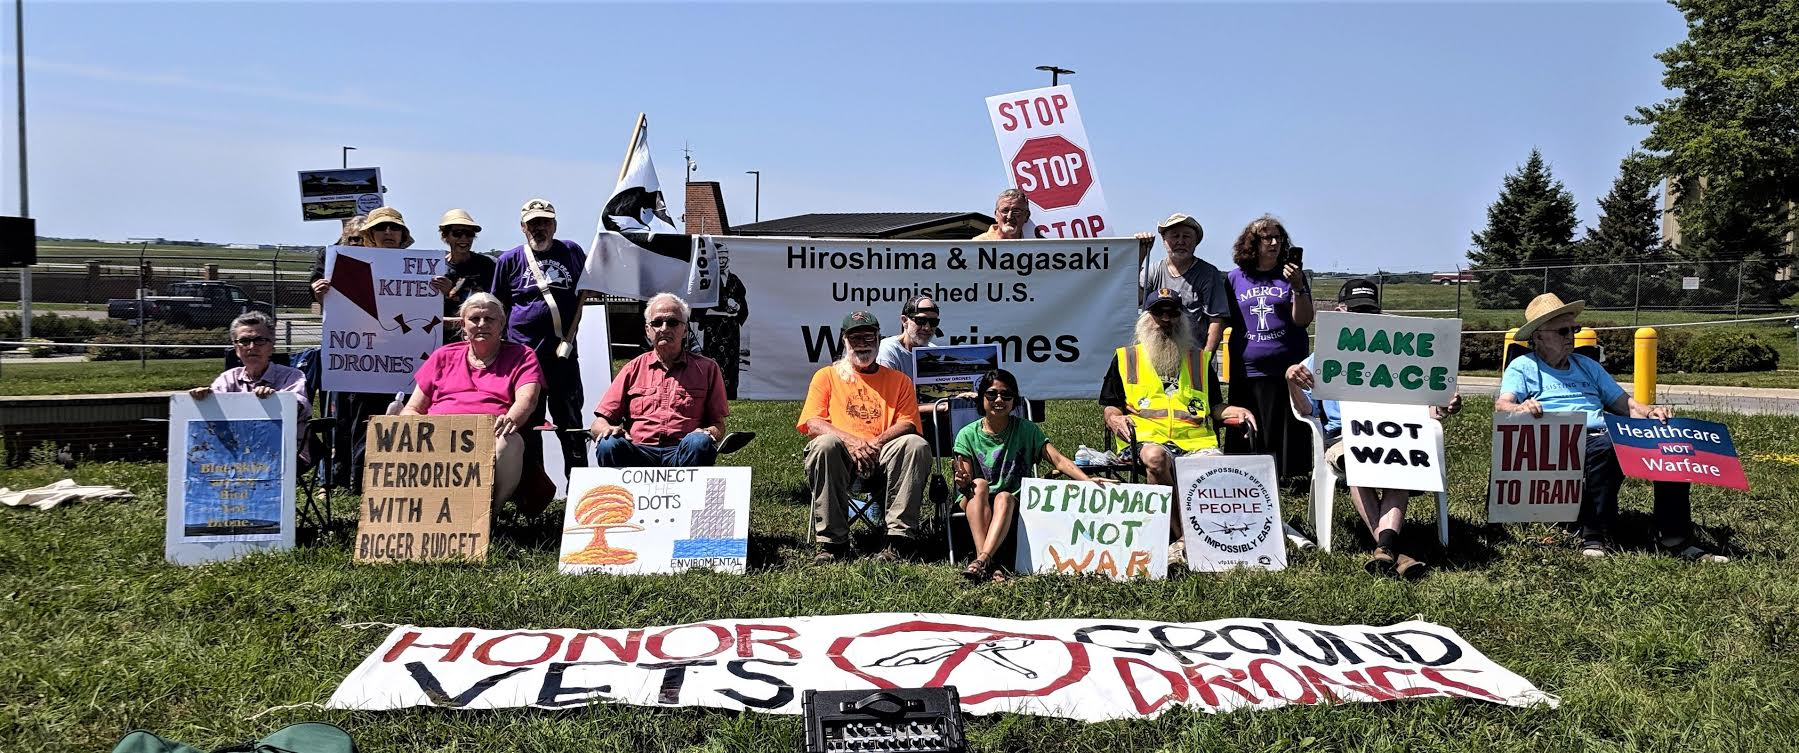 Members of the Des Moines Catholic Worker, Veterans for Peace and others protesting nuclear and drone war at the Des Moines Iowa Air National Guard base on August 9, 2019.